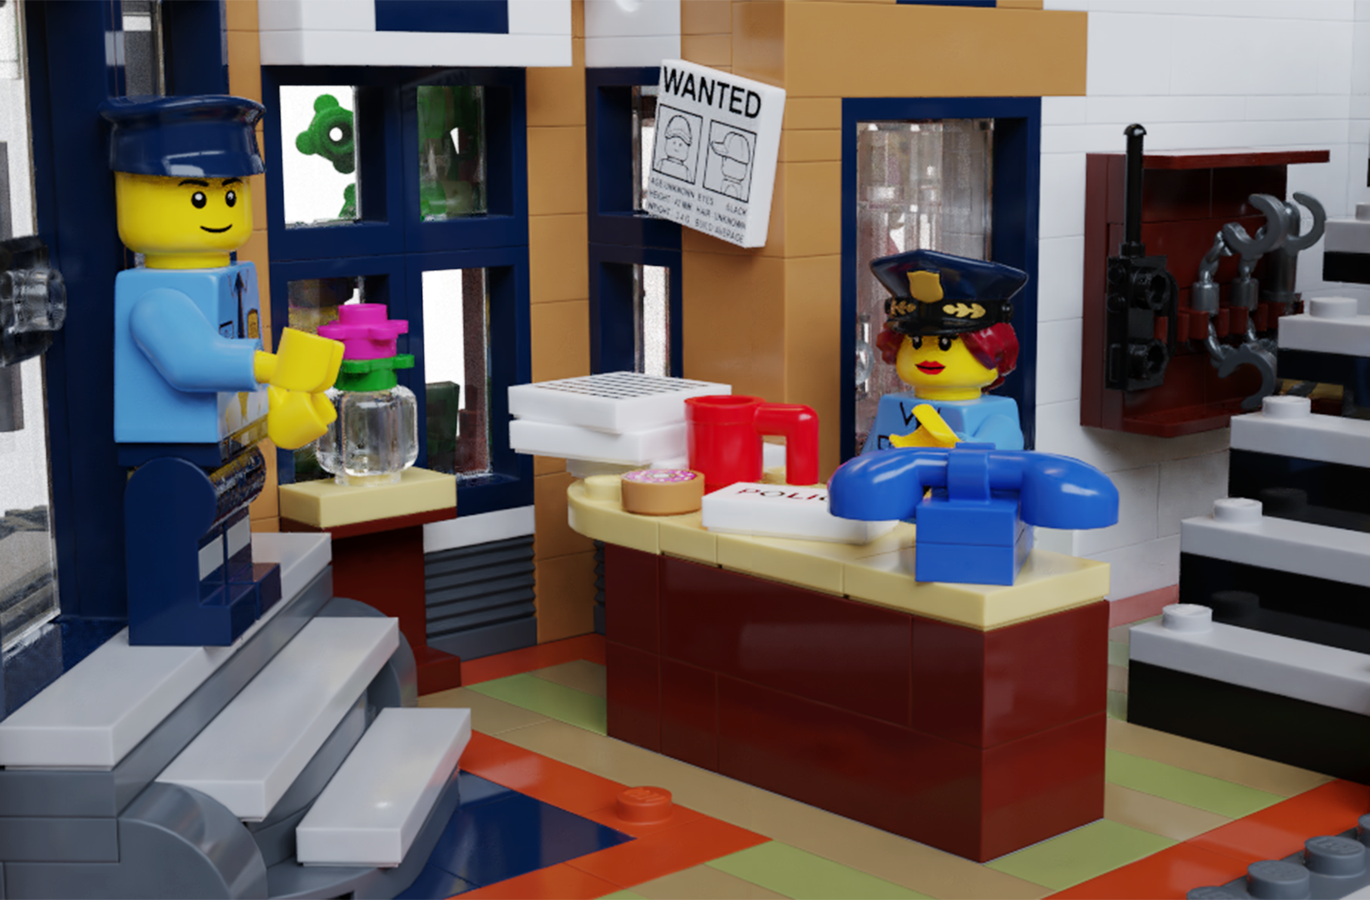 6164296-Police_Station_34-thumbnail-full.png